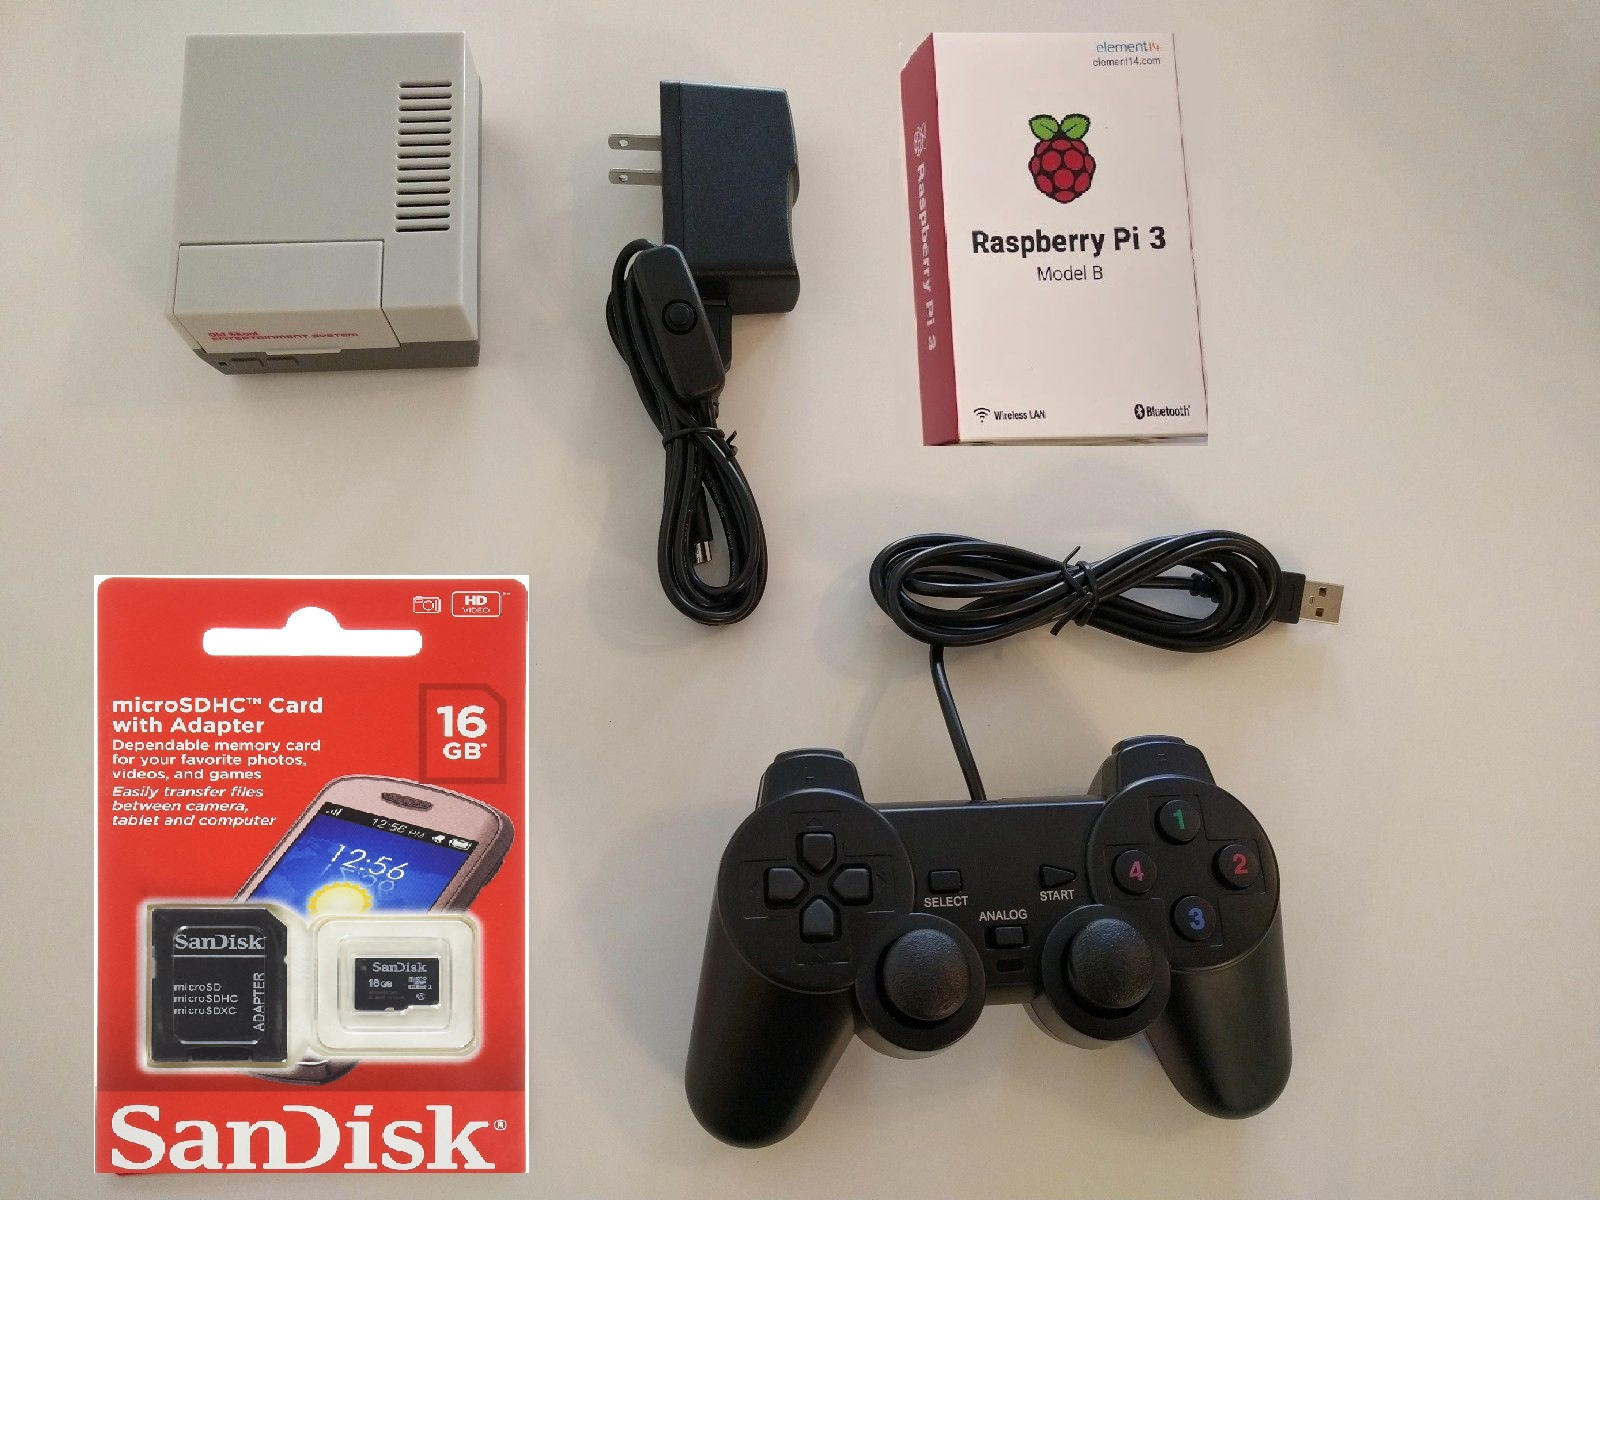 Raspberry Pi 3 Mini NES Classic Tribute Retro Gaming console 16GB w/ Controller